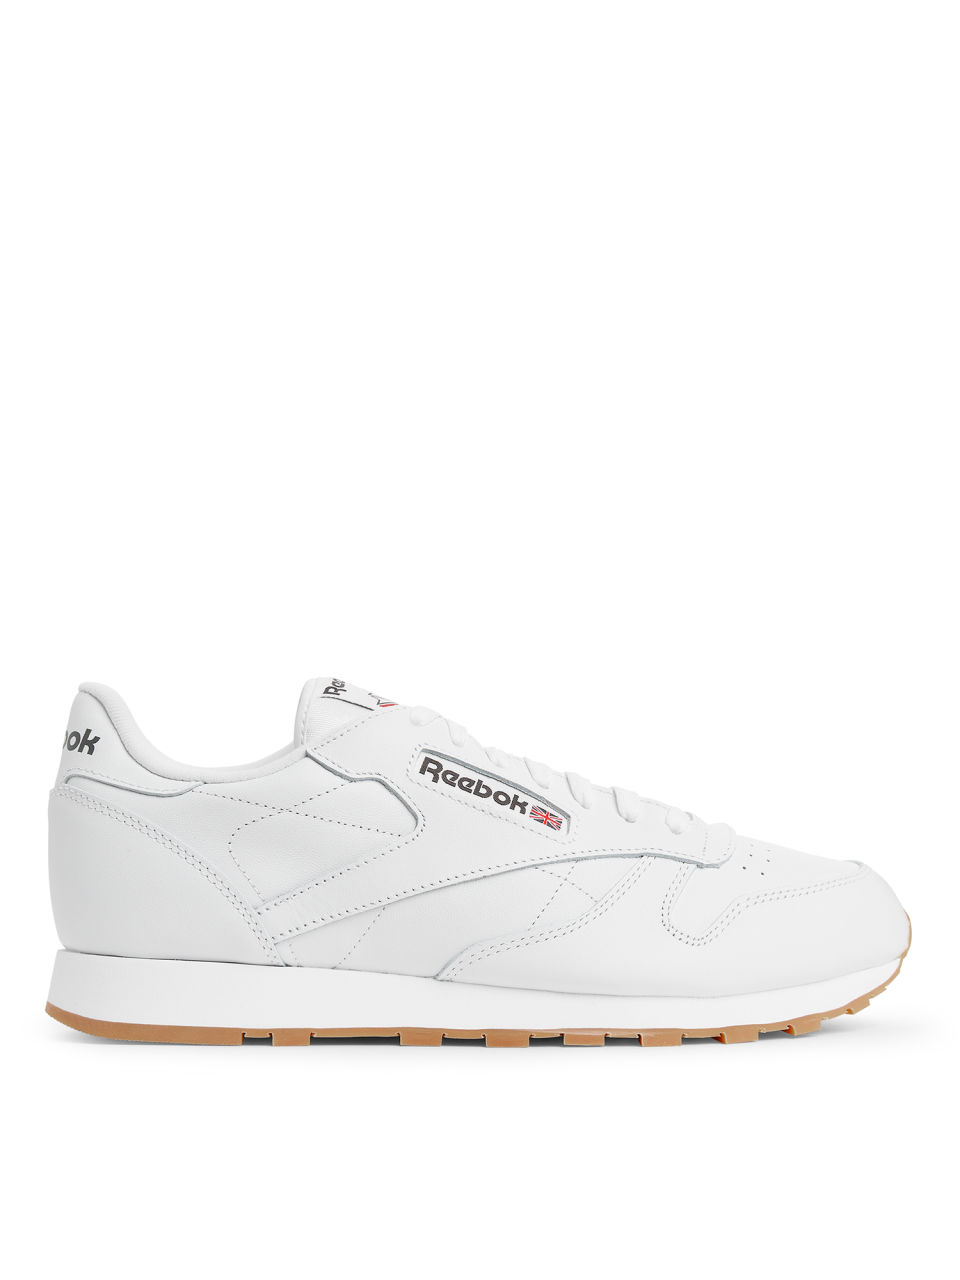 Reebok Classic Leather Trainers In White 49799 Men [1096790